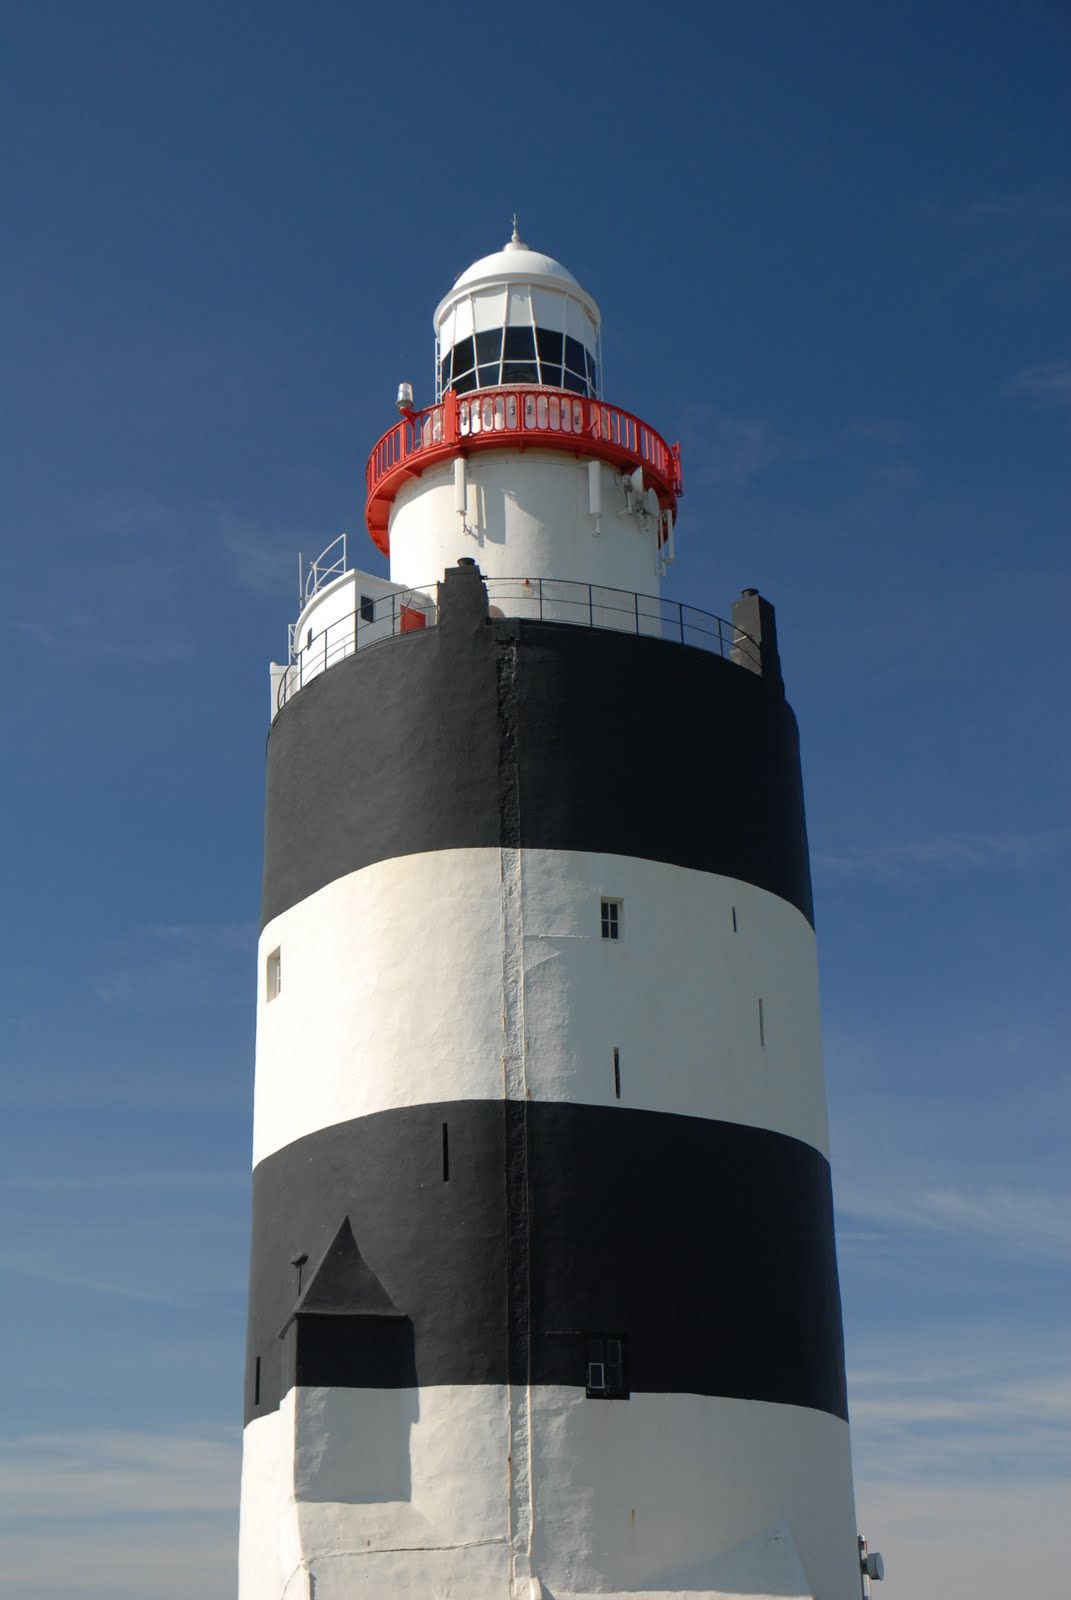 Nat S Stuff Hook Head Lighthouse Waterford Crystal Tramore